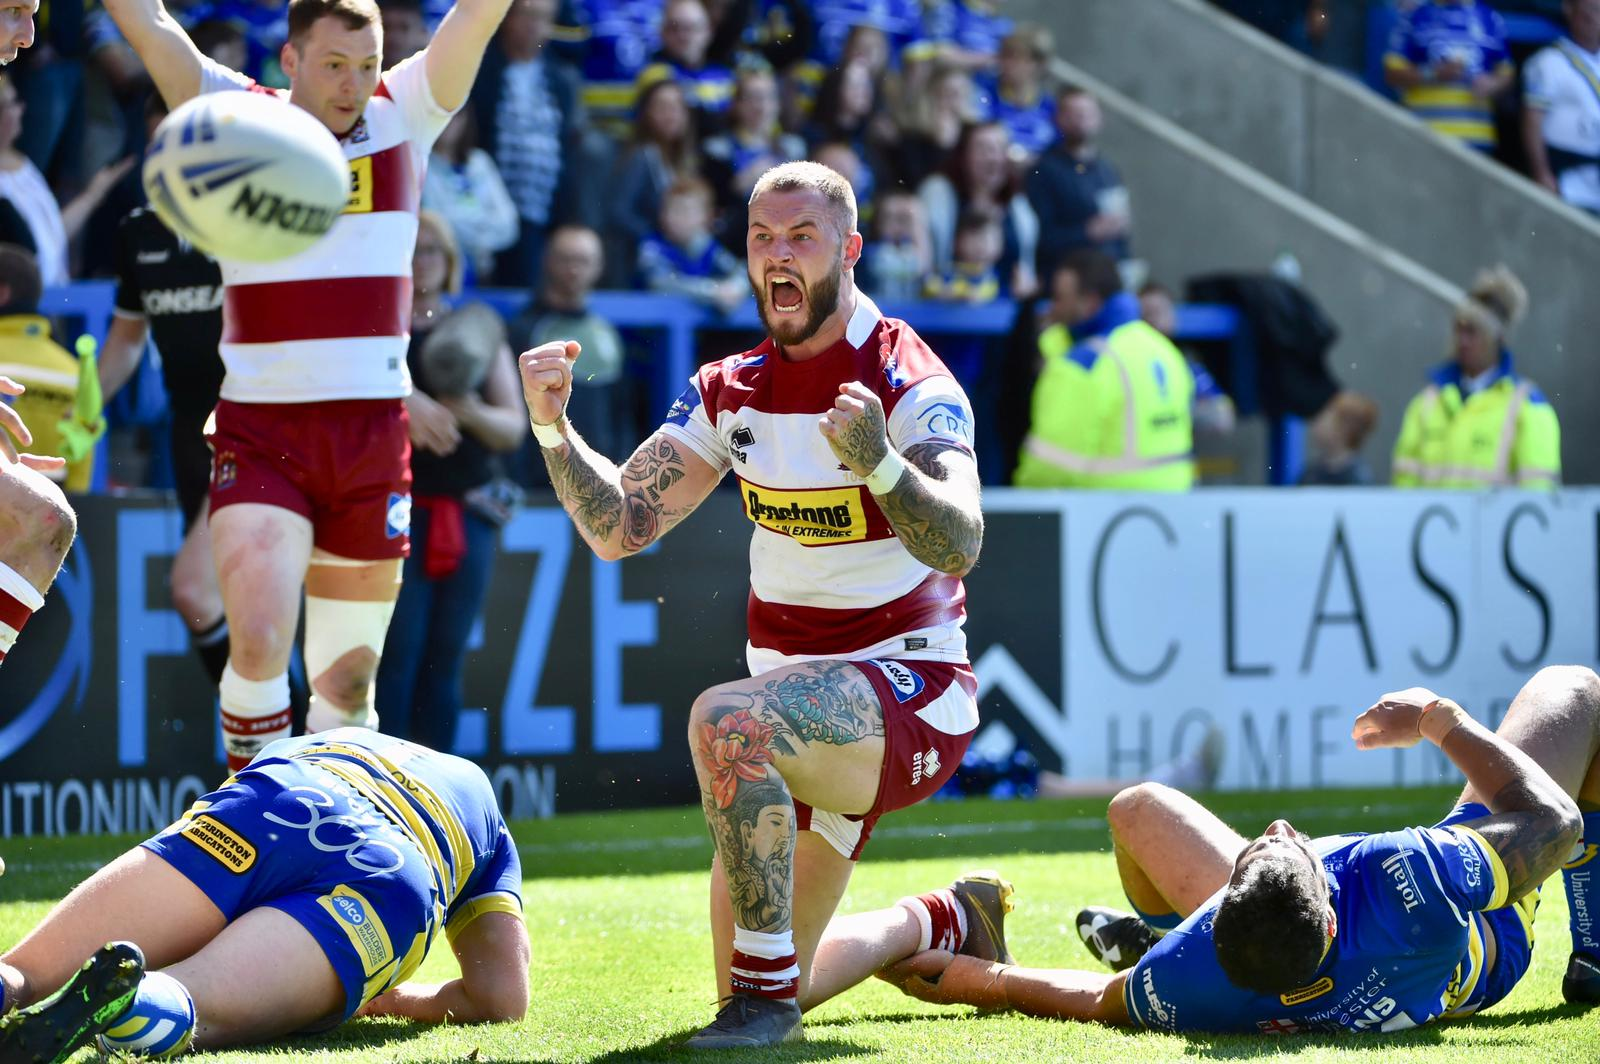 We're improving: Hardaker